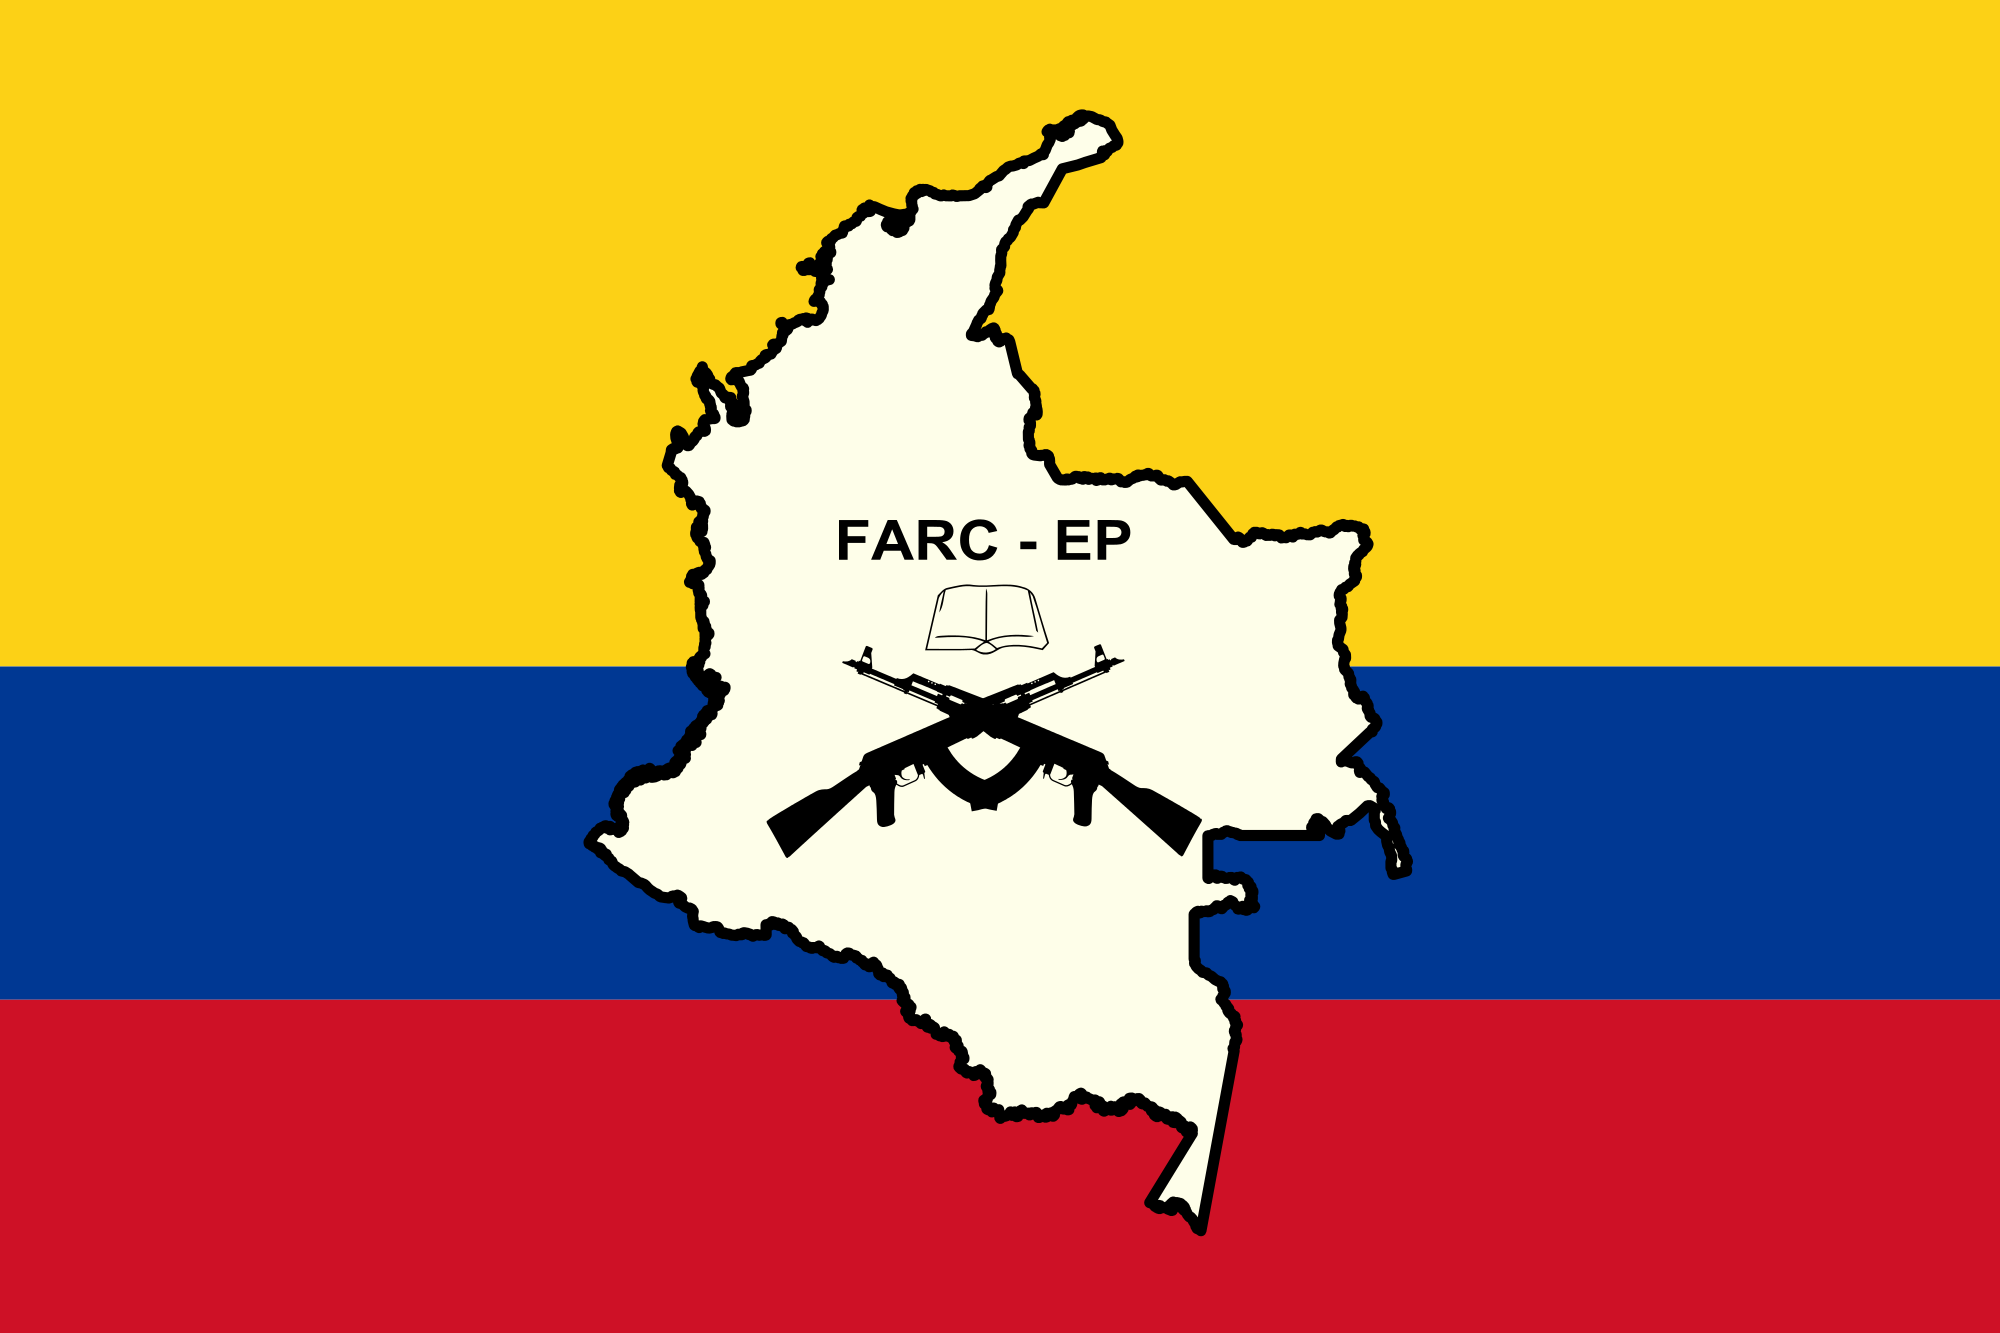 Flag of the FARC EP